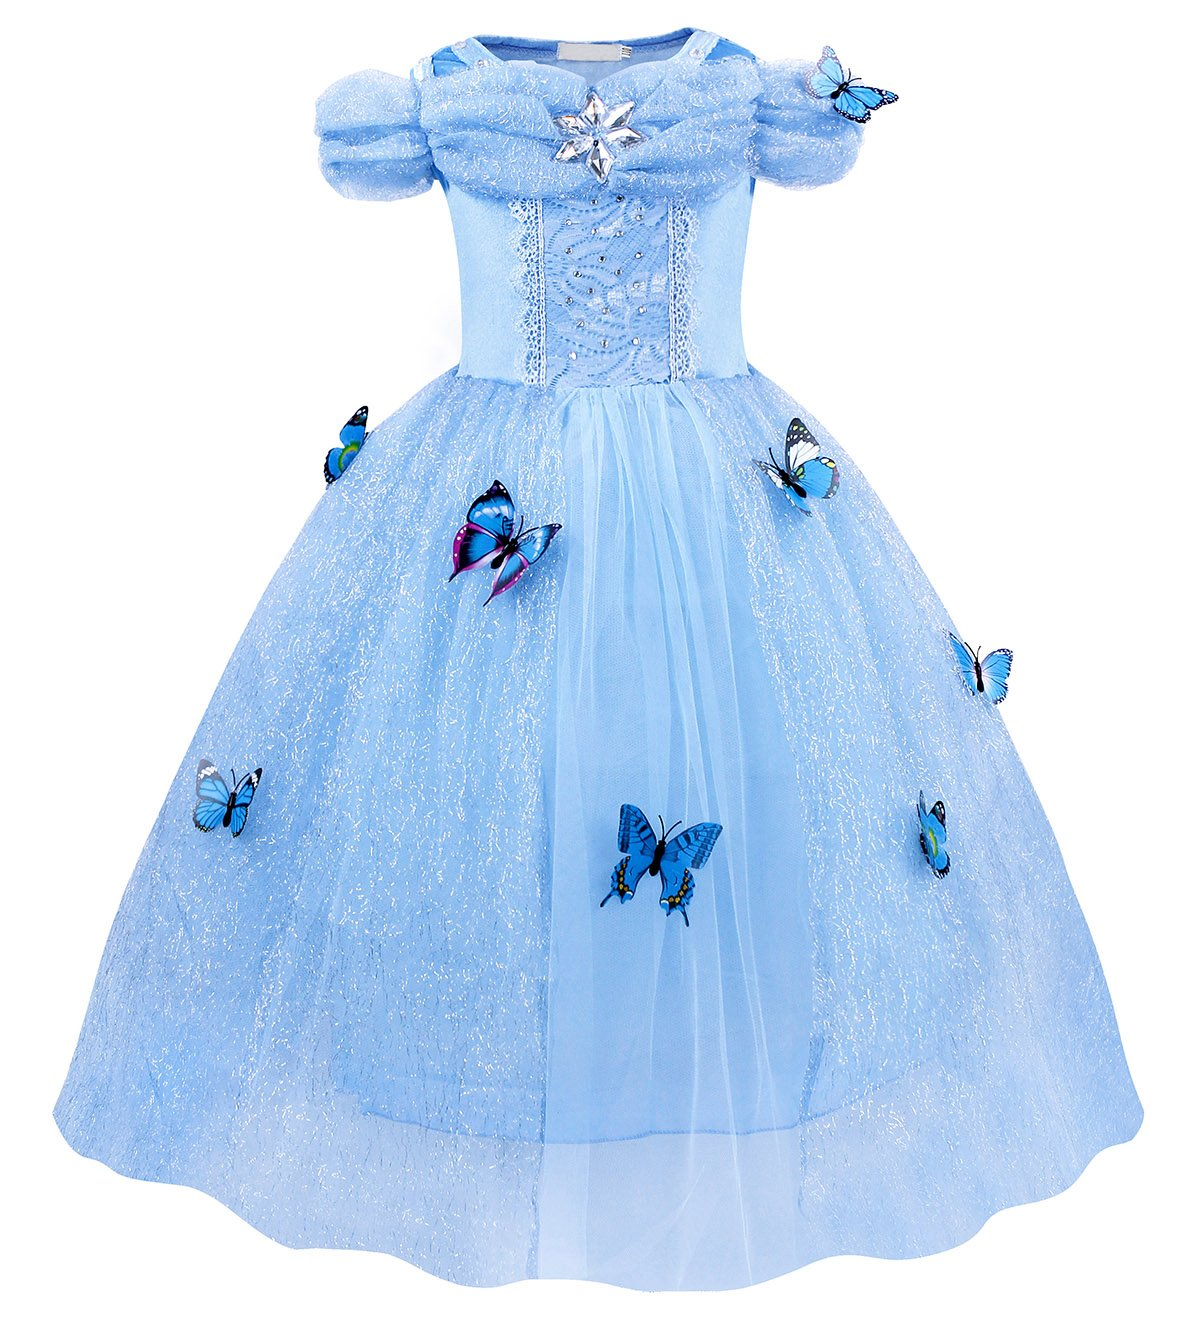 HenzWorld Little Girls Dresses Dress Up Costume Princess Birthday Party Cosplay Role Pretend Long Layered Tutu Skirt Outfits Butterfly Blue Children Kids 4T Age 3-4 Years